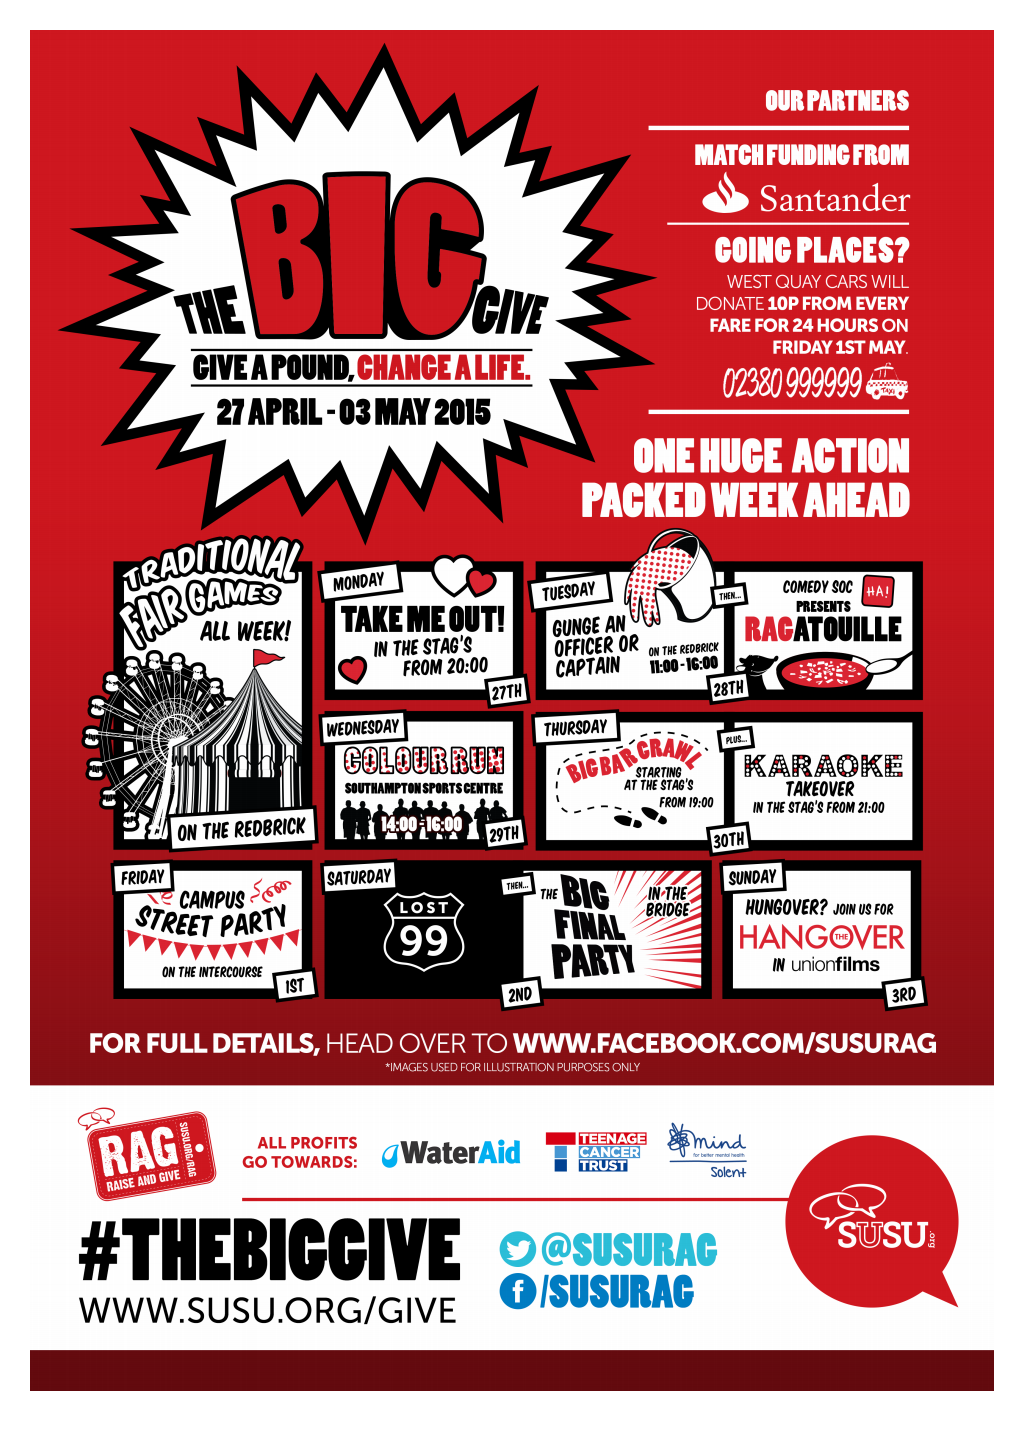 The Big Give timetable poster